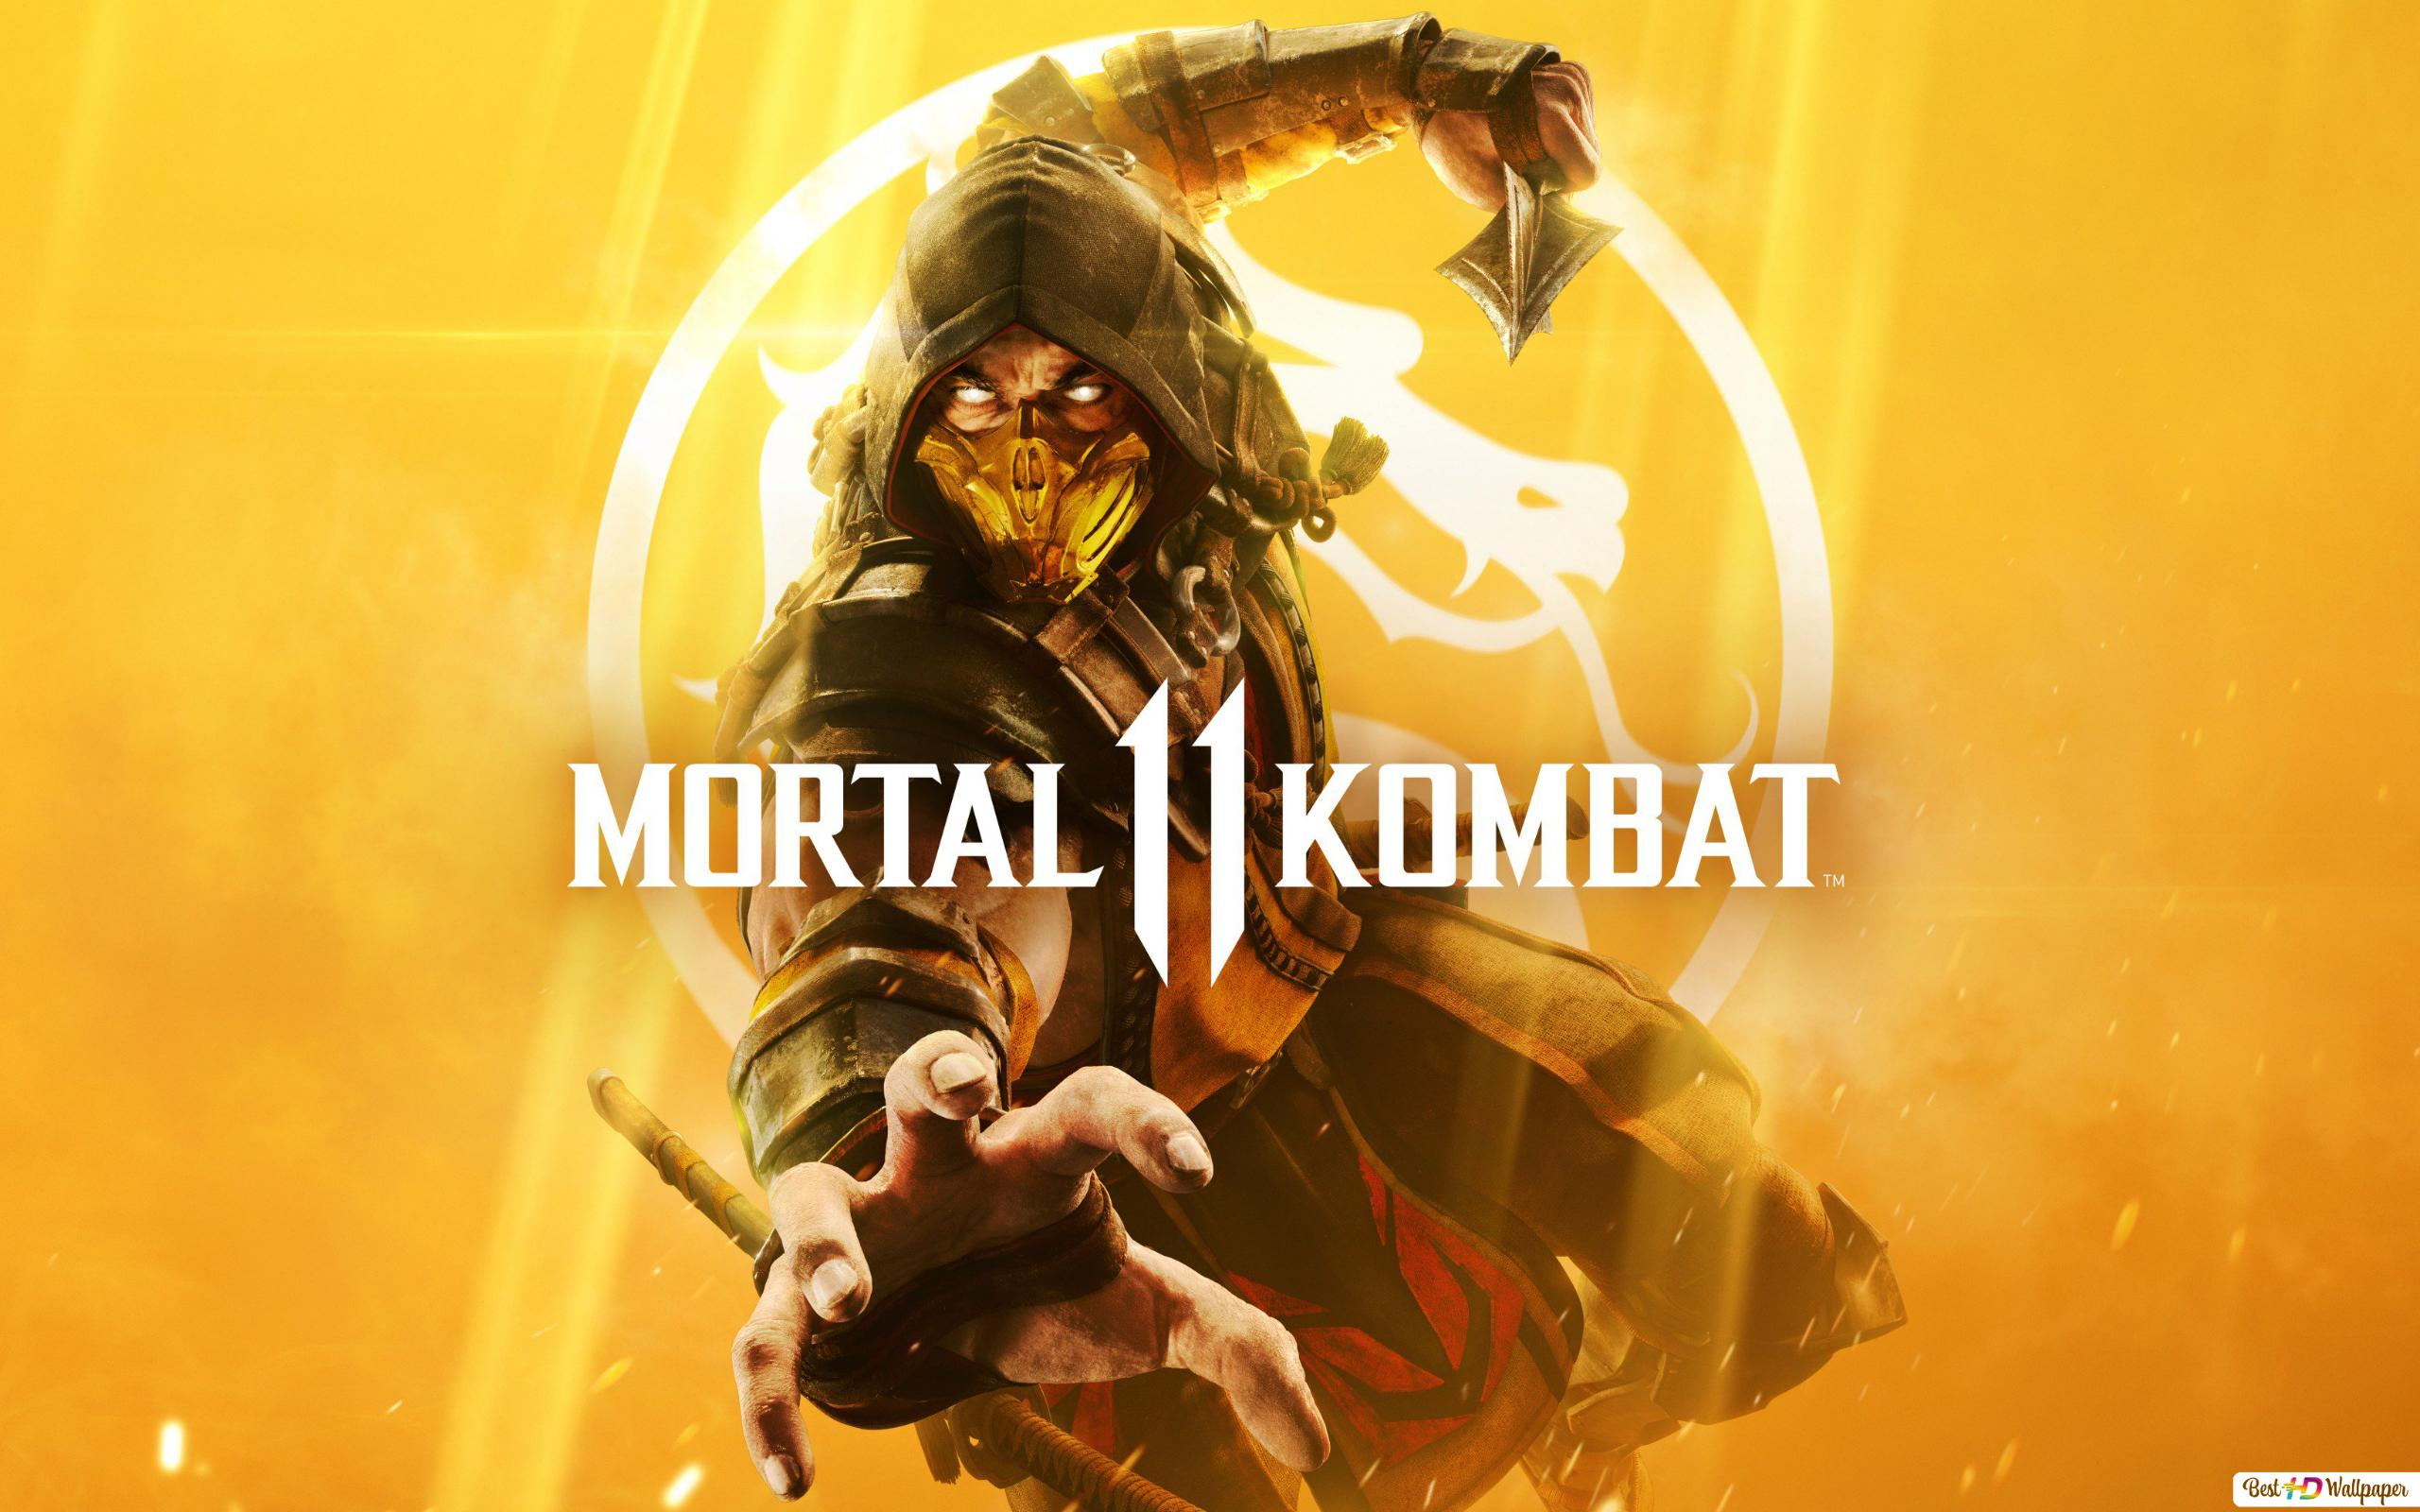 Mortal Kombat 11 Scorpion Hd Wallpaper Download